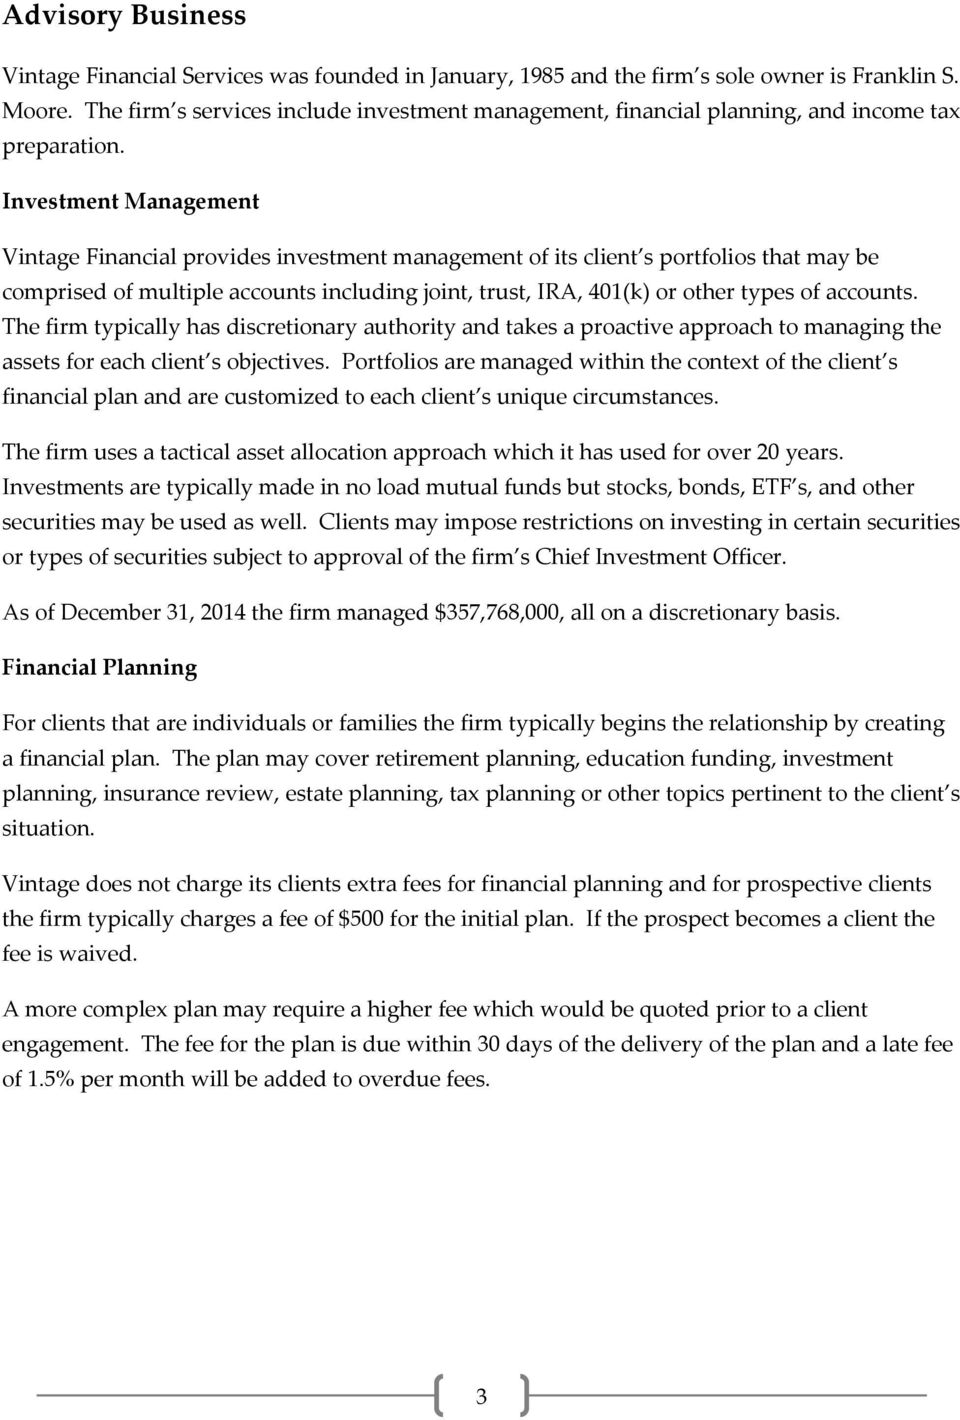 Investment Management Vintage Financial provides investment management of its client s portfolios that may be comprised of multiple accounts including joint, trust, IRA, 401(k) or other types of